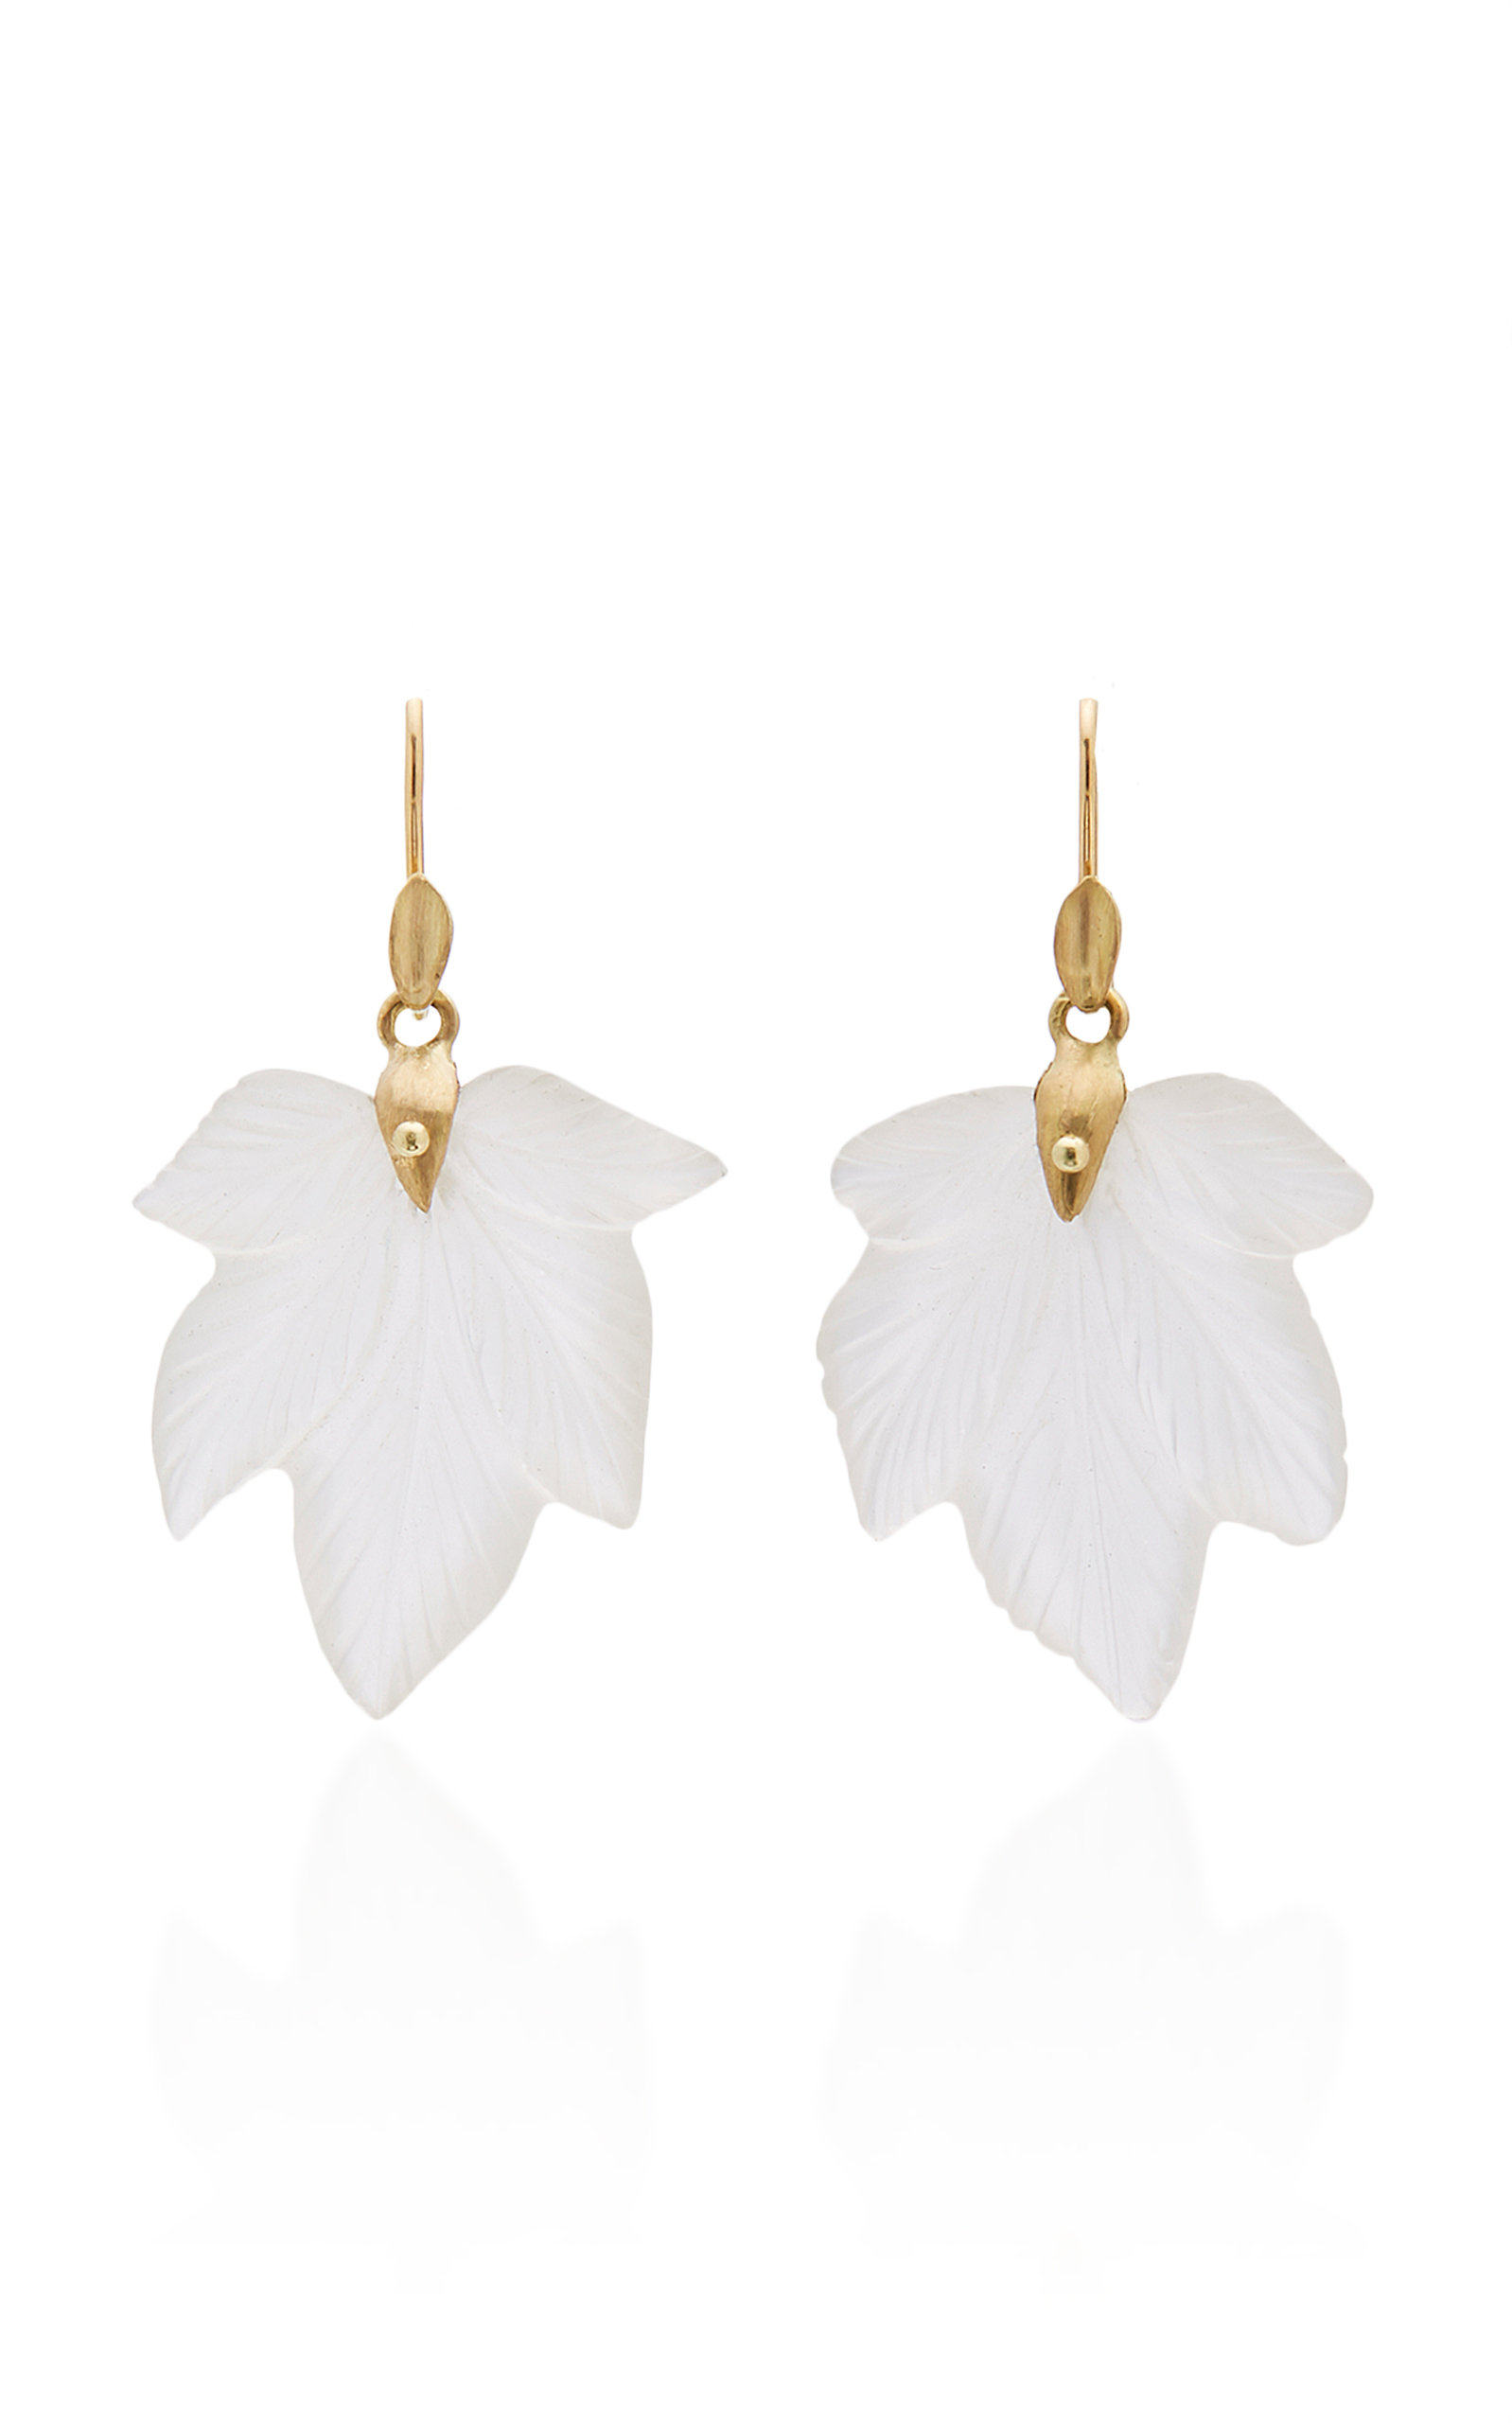 ANNETTE FERDINANDSEN M'O EXCLUSIVE: FROSTED QUARTZ FANCY LEAF EARRINGS